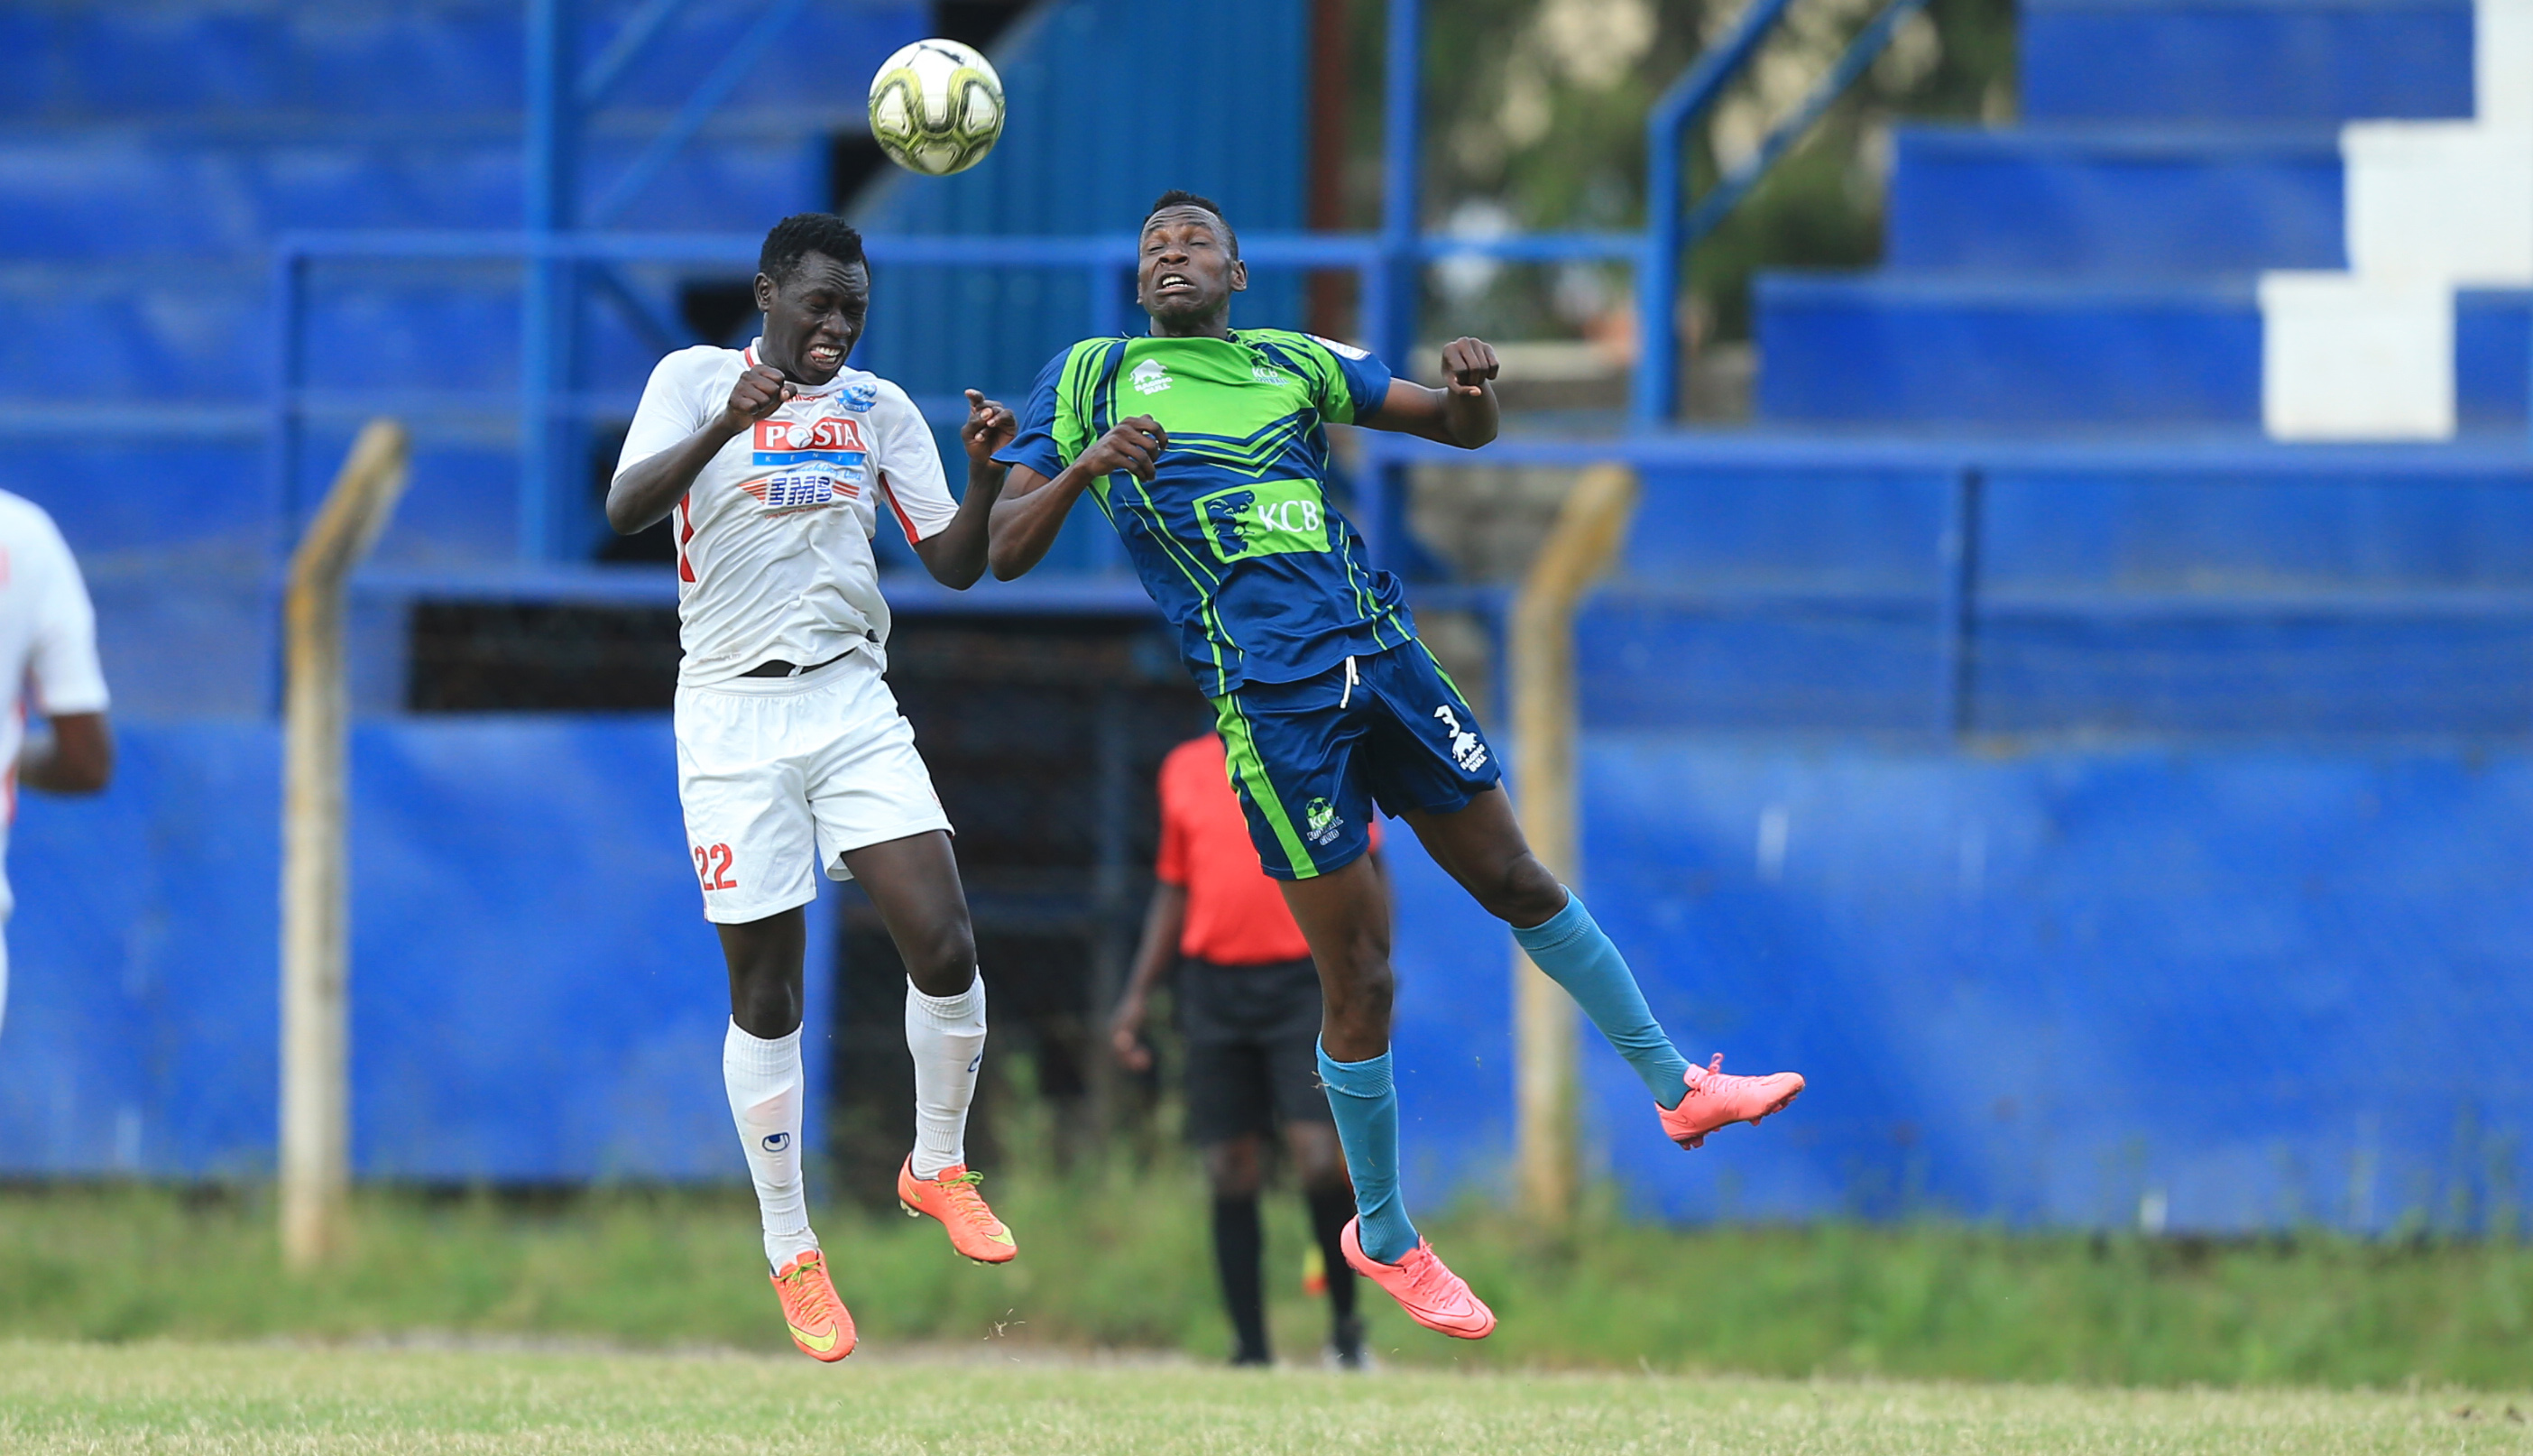 Rupia helps AFC Leopards shoot down Sofapaka as KCB hit Rangers